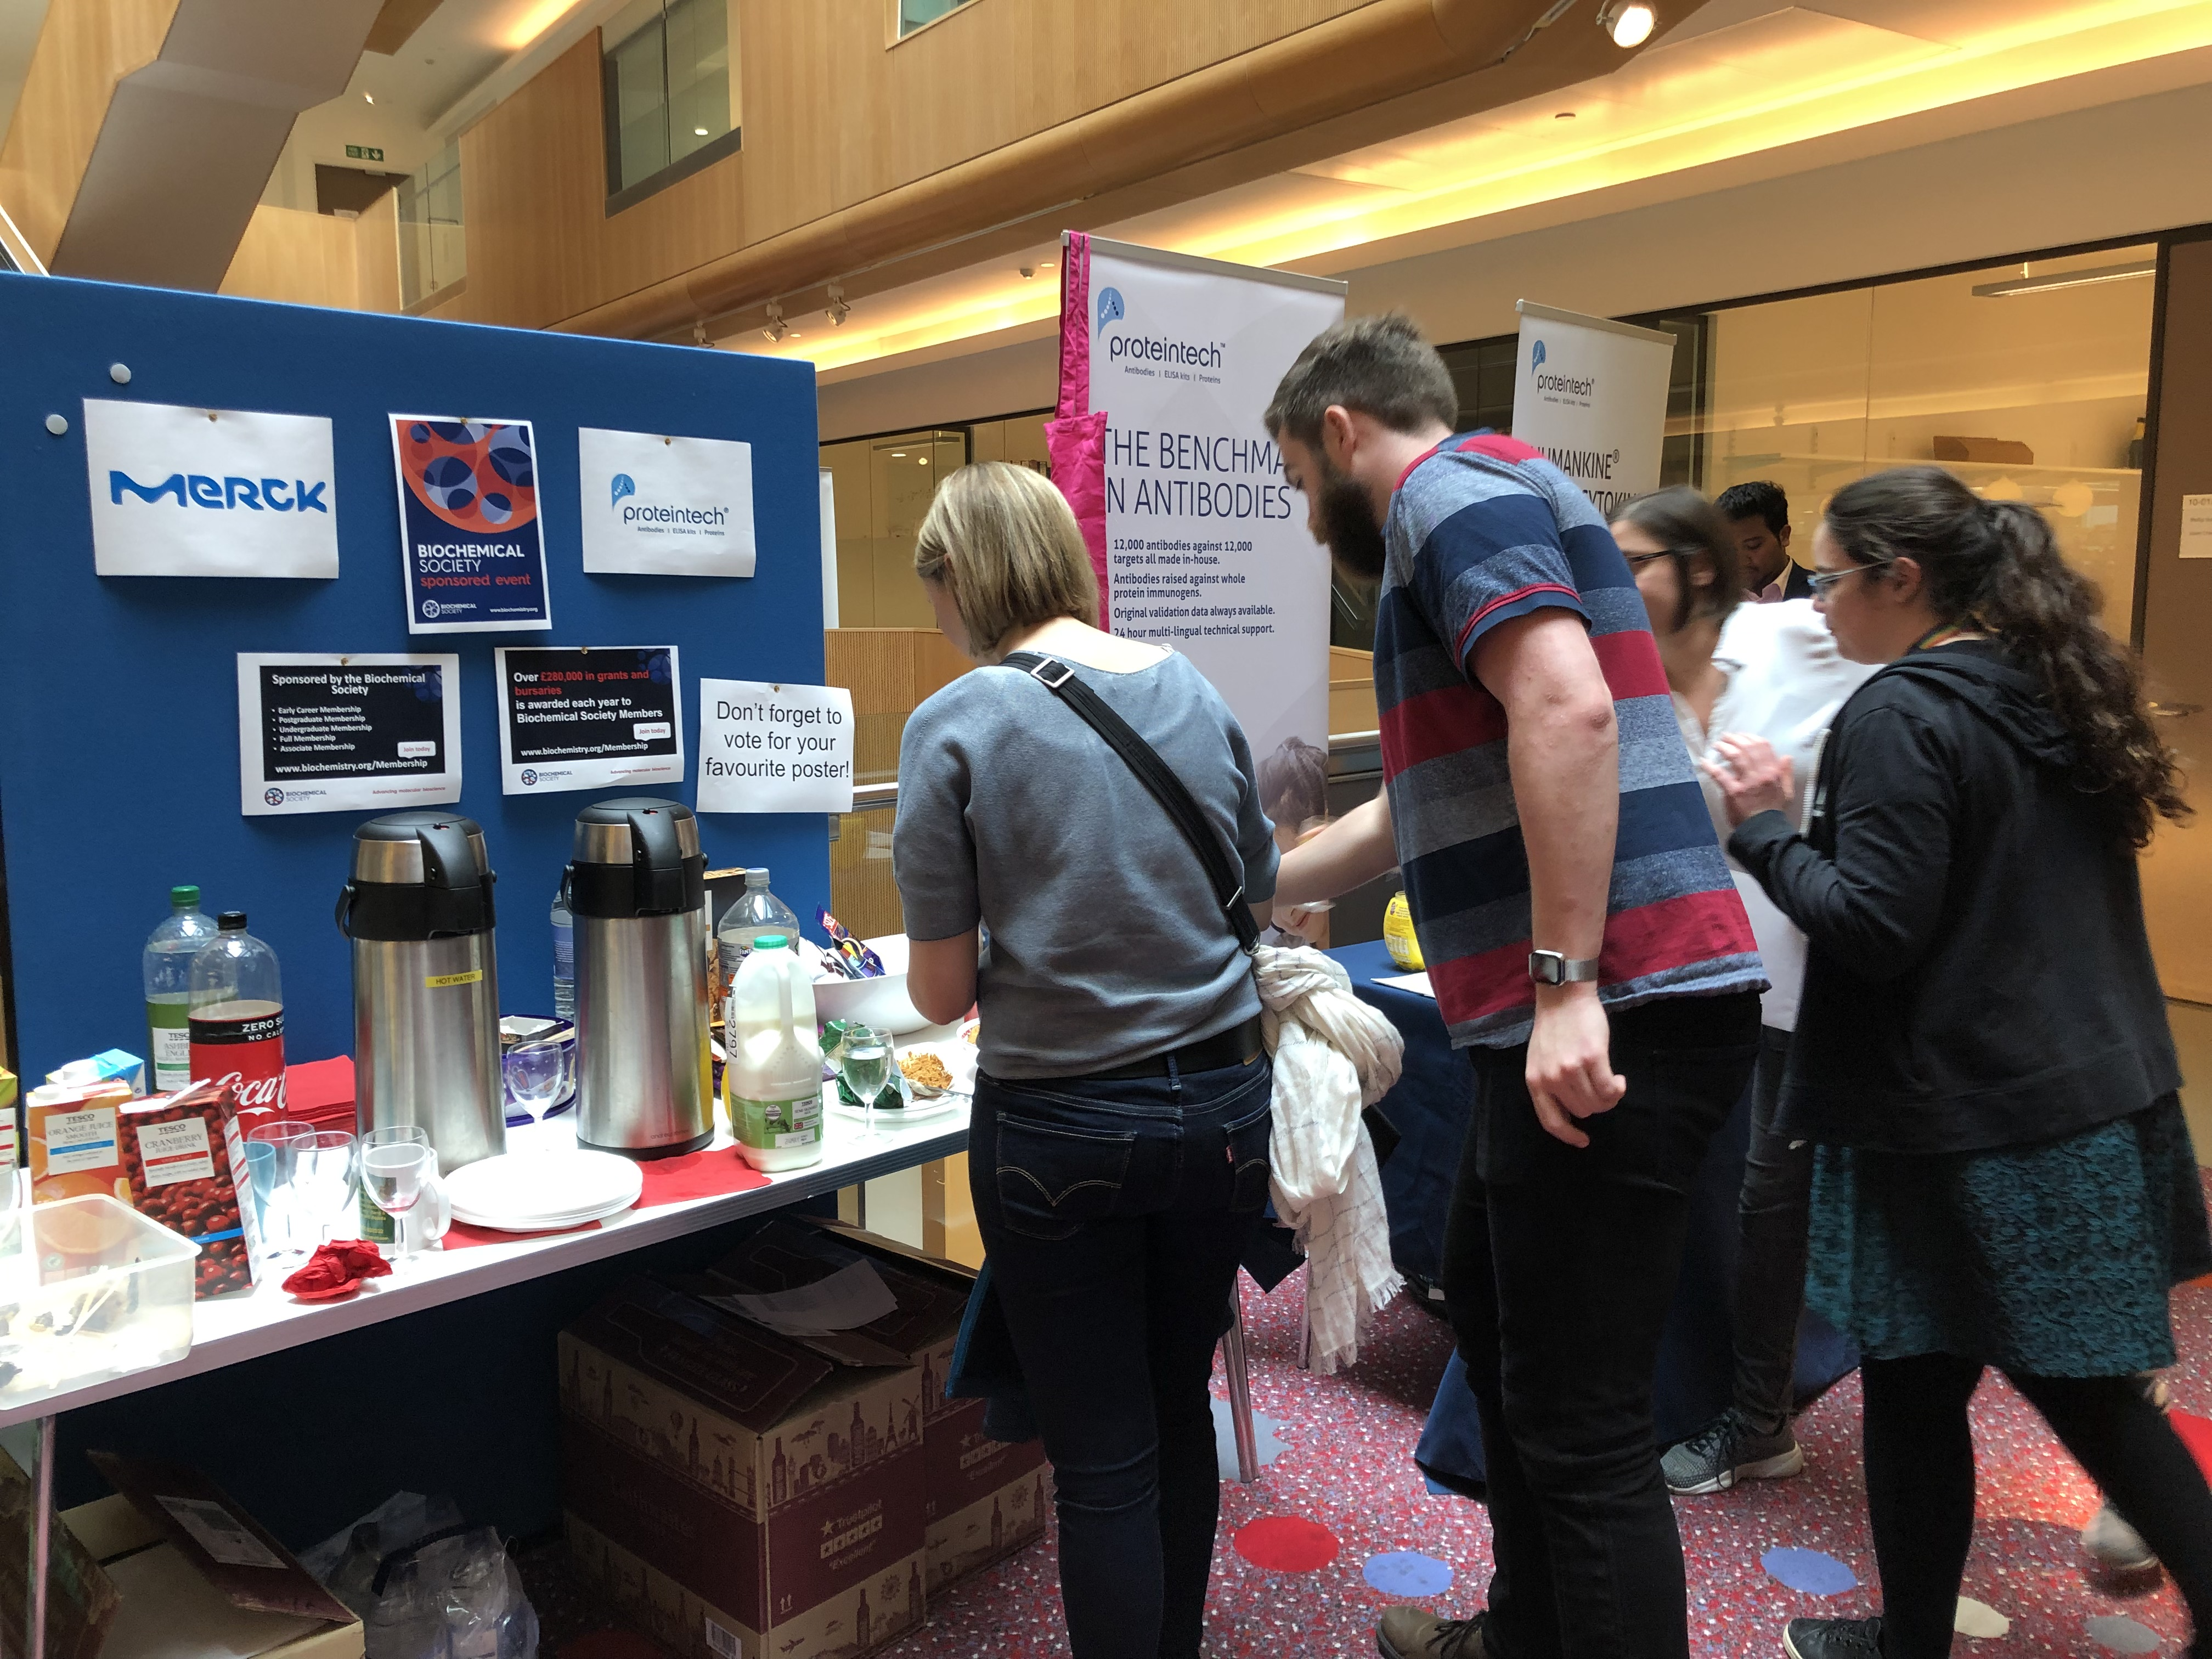 Attendees help themselves to coffee at the poster session.